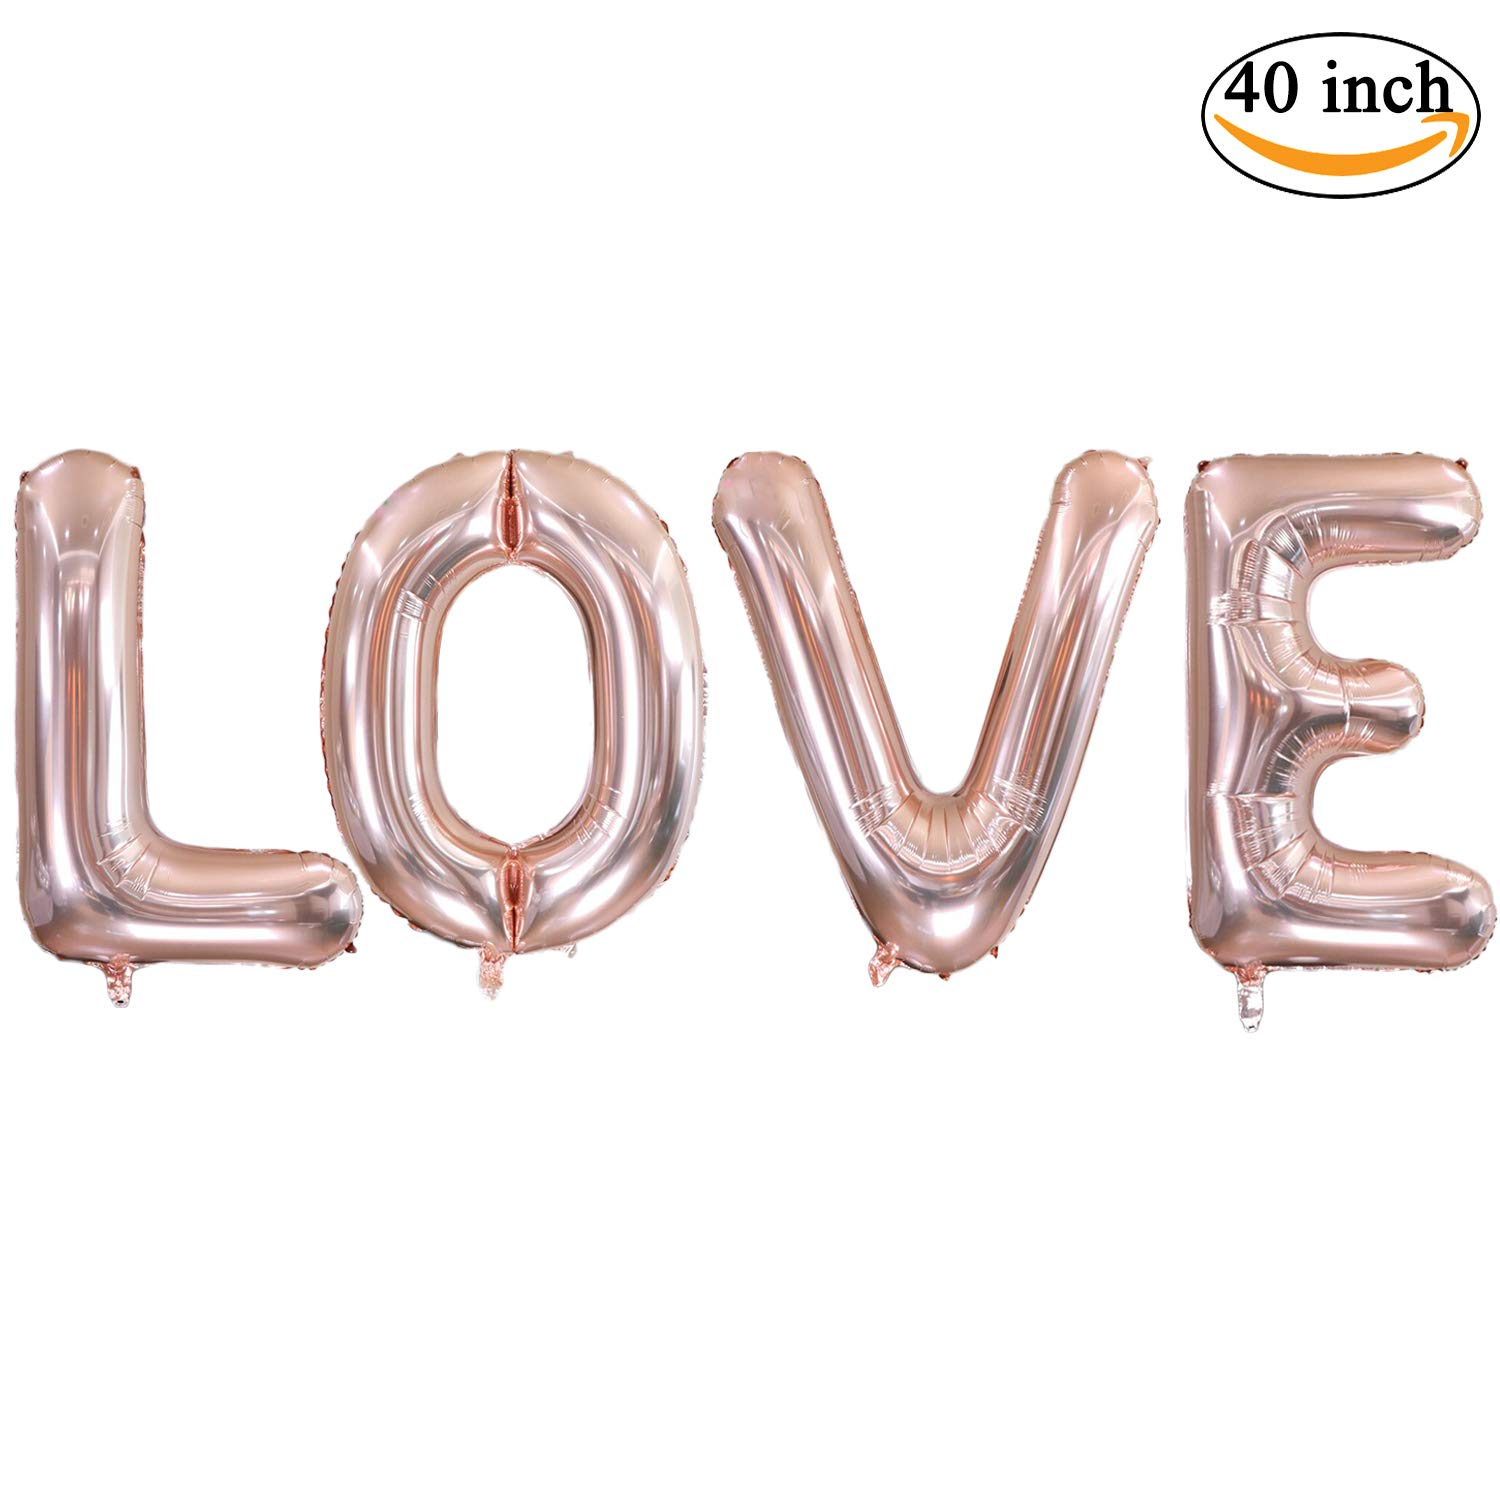 Ruimeier Rose Gold Love (40 inch) Large Balloons, Bridal Shower Wedding Engagement Anniversary Vow Renewal Bachelorette Party Decorations H007RG by Ruimeier